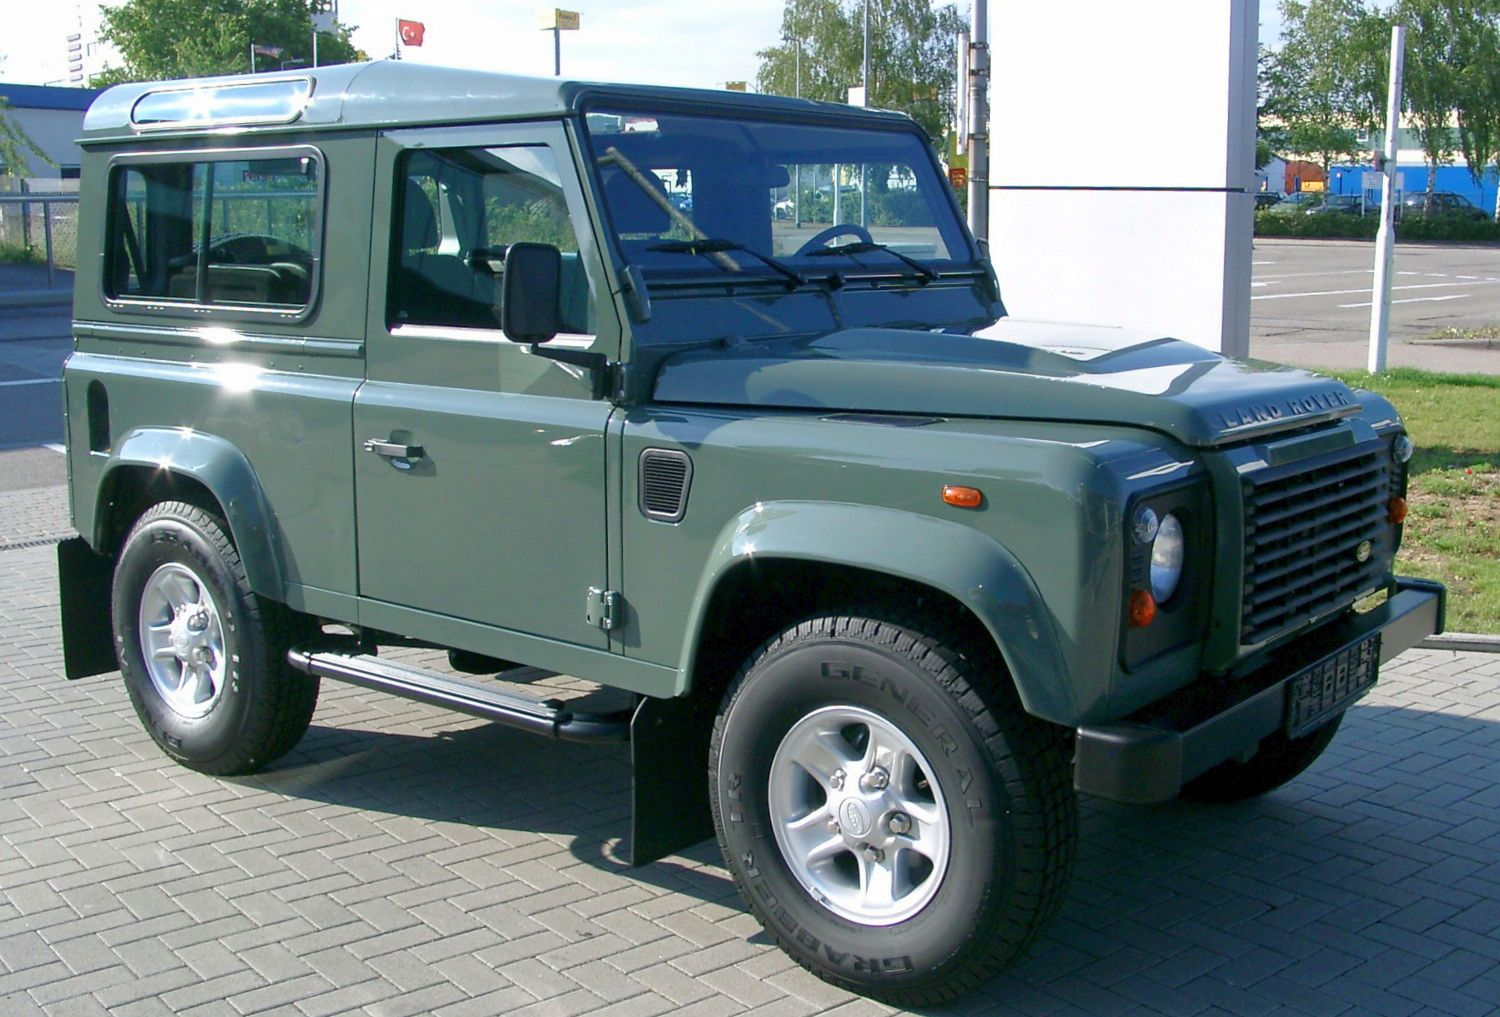 motoring news cost will landrover land new rover works car defender research you this